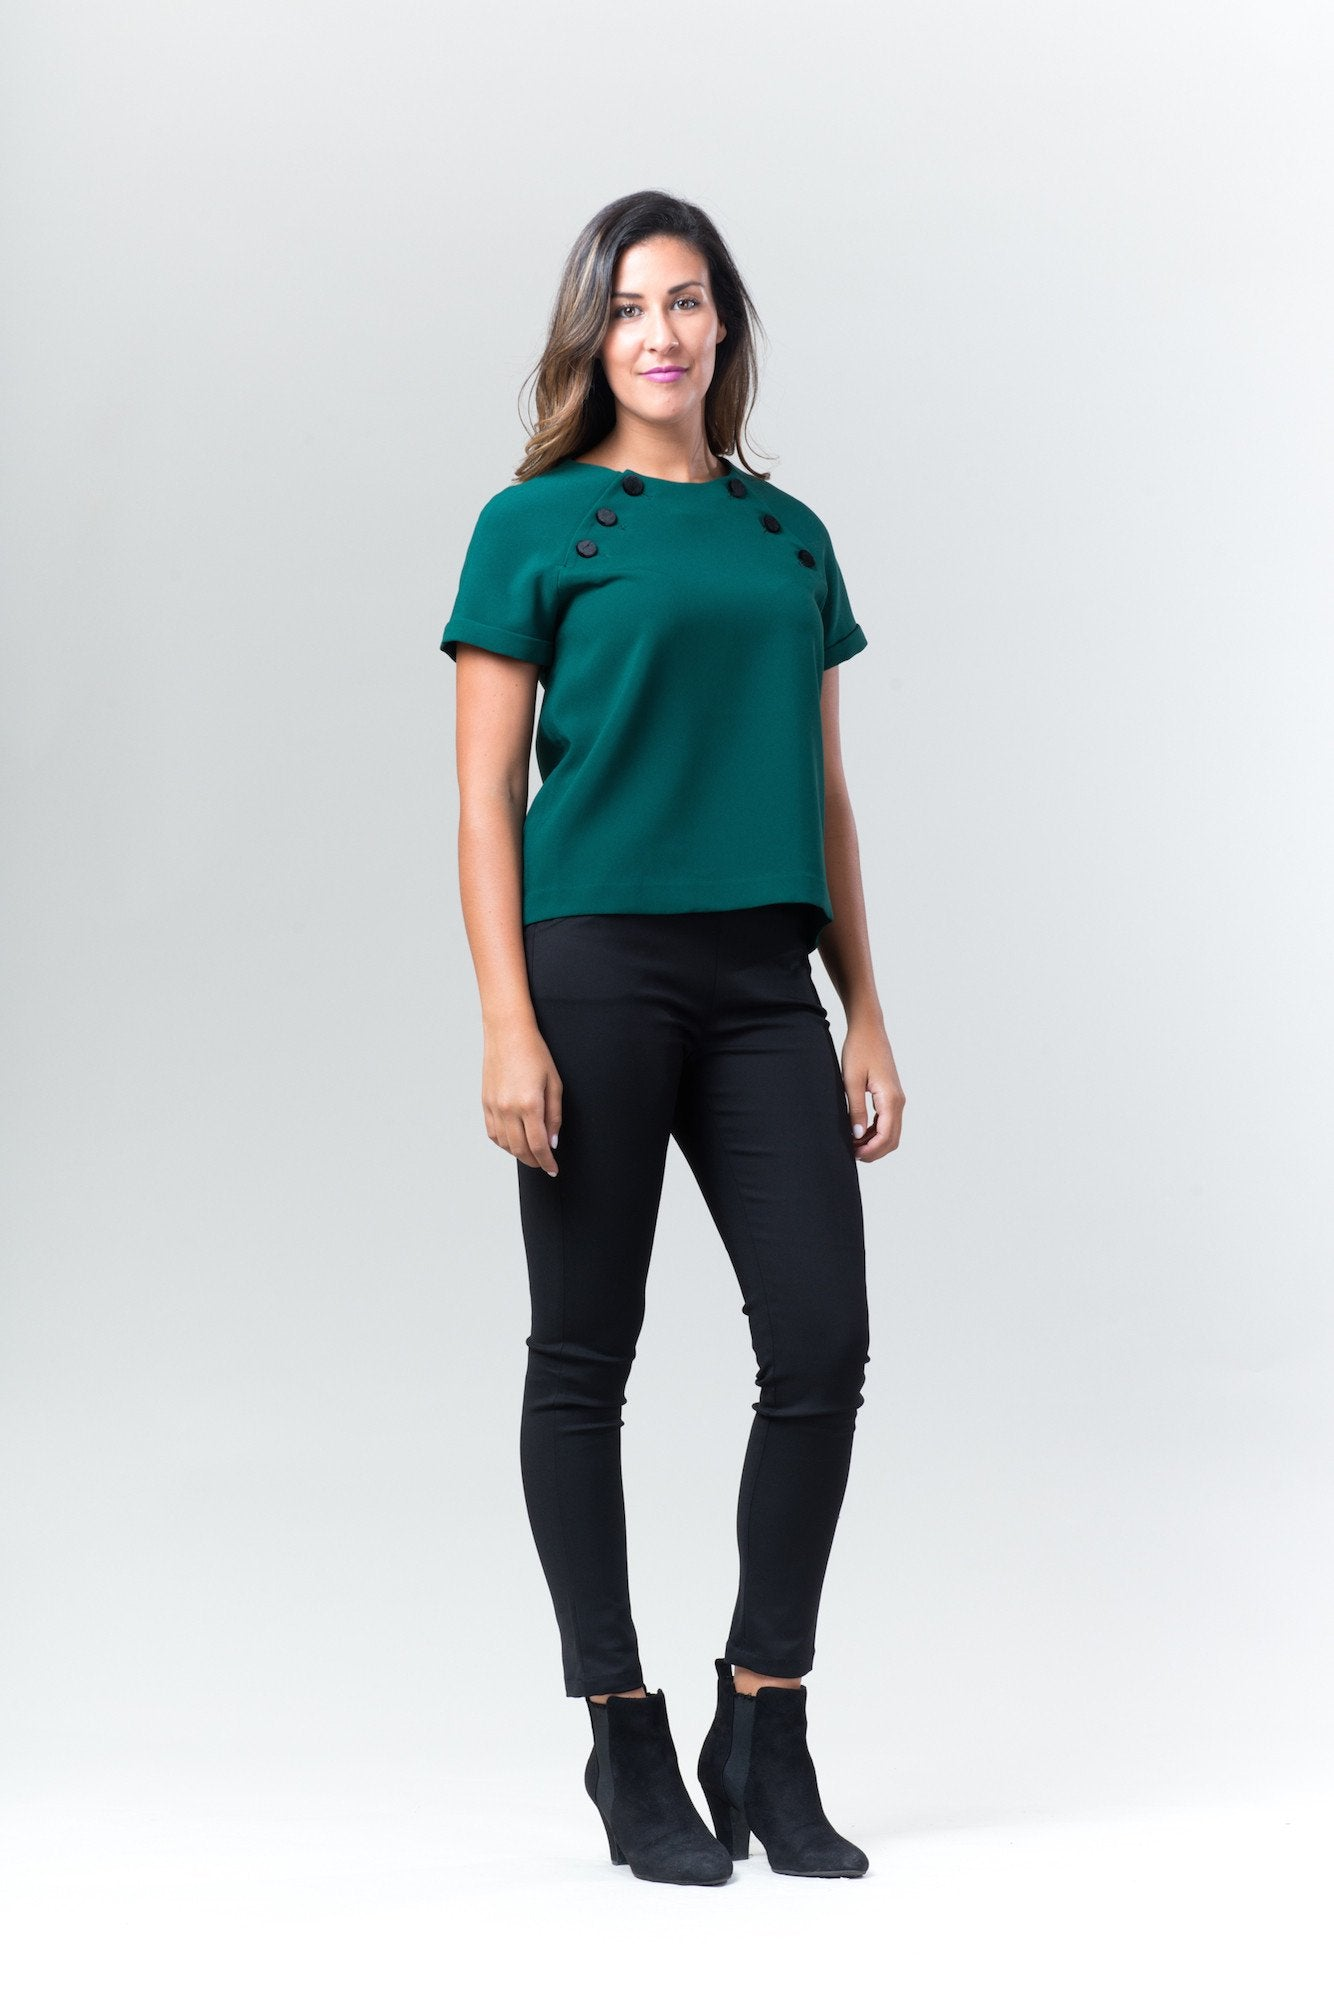 Forrest Green short sleeve top with covered buttons by FRNCH